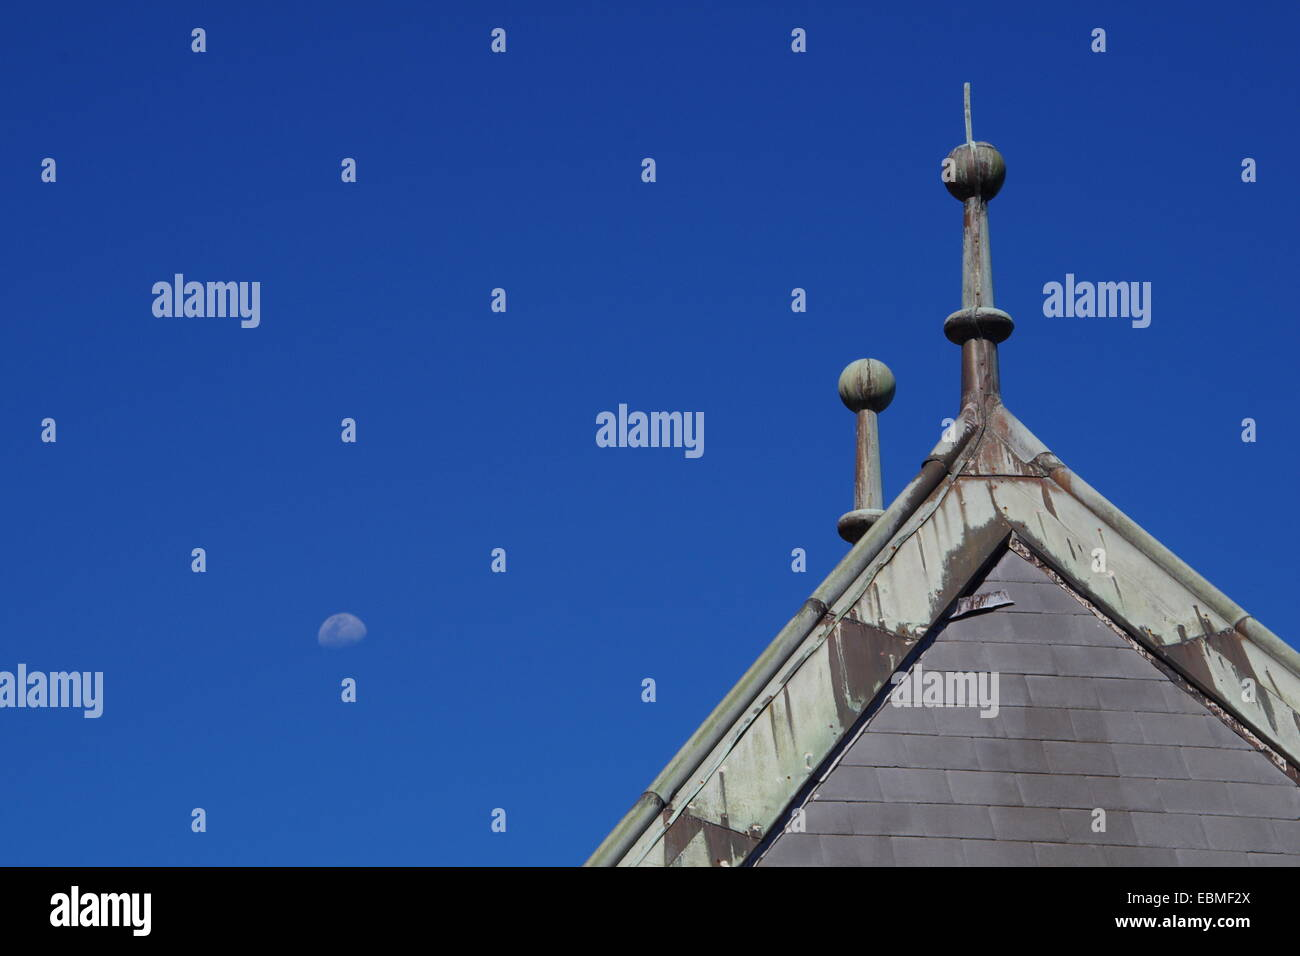 Valve house roof and the moon on a bright sunny day. - Stock Image